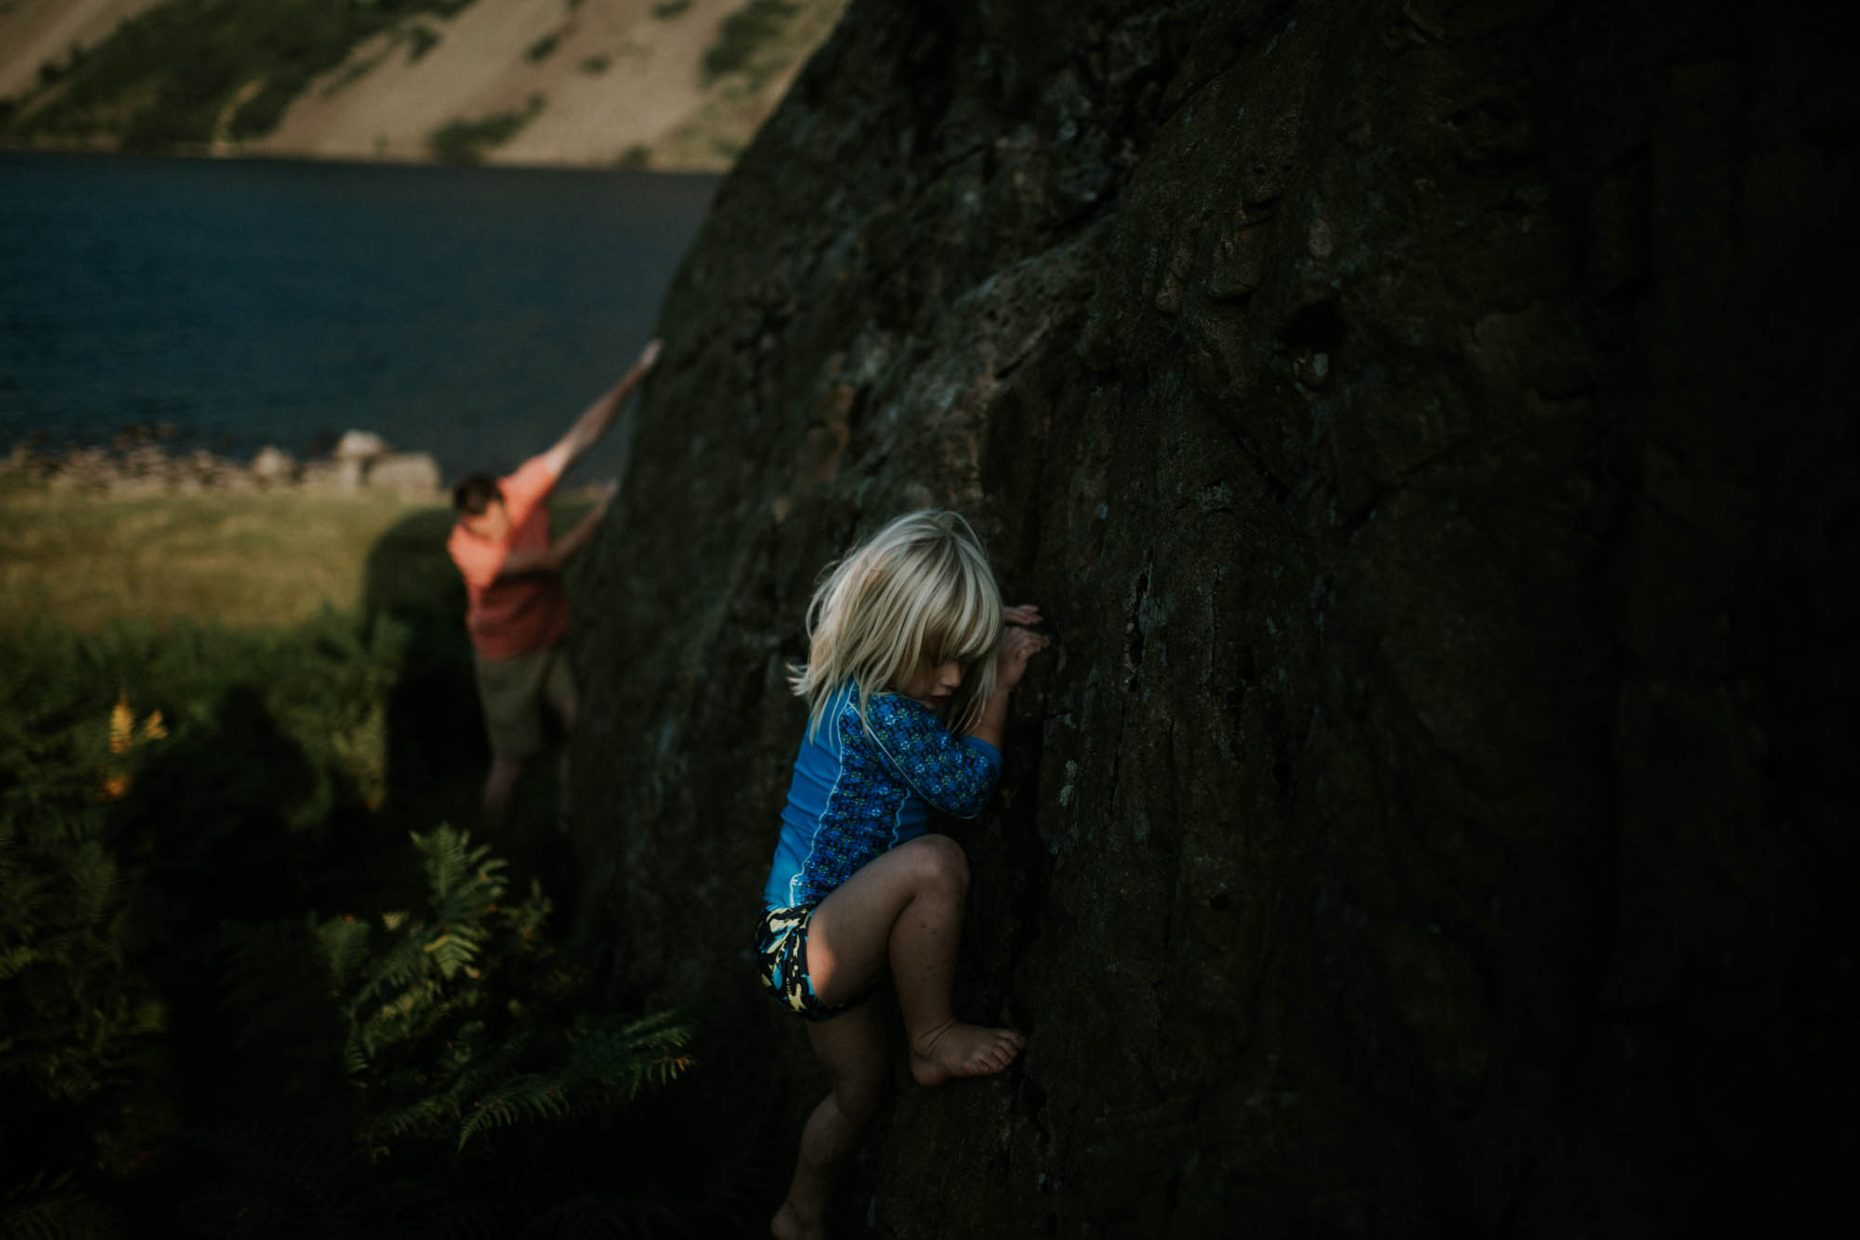 A young boy is bouldering with his father on a rock barefoot and his face pulling a strained expression